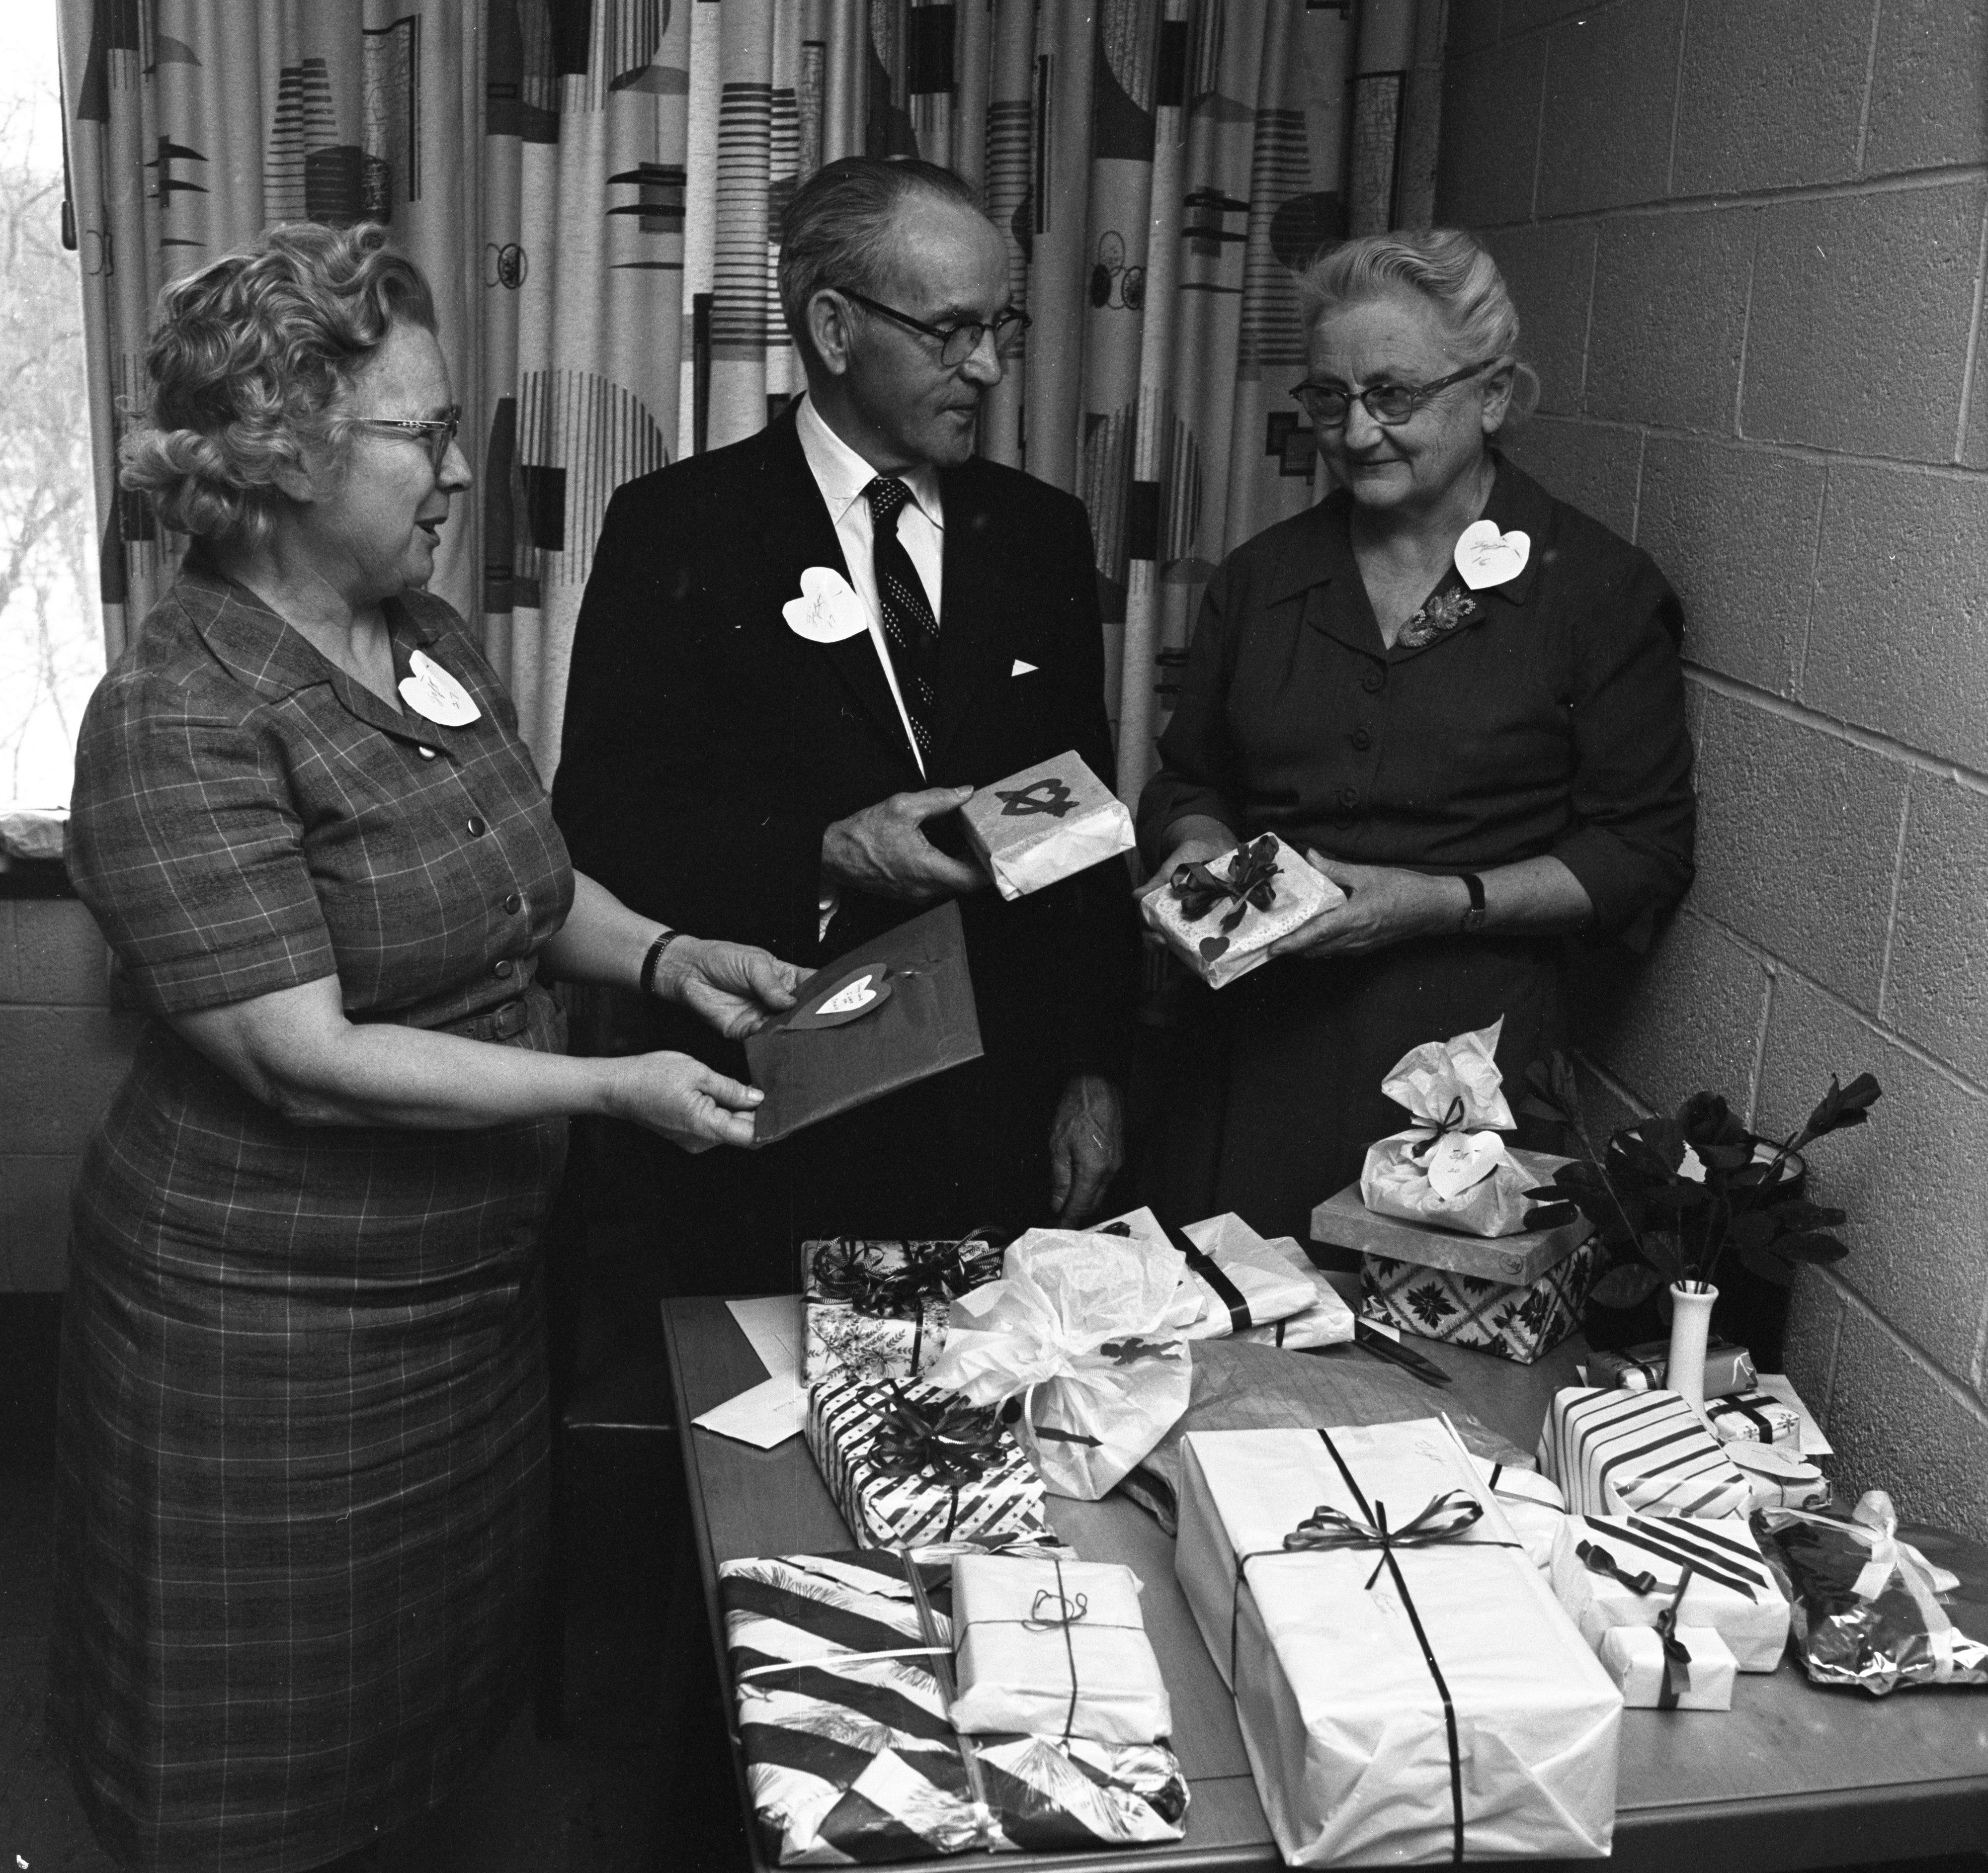 Senior Citizens Club Valentine Party At St. Luke's Church In Ypsilanti, February 1962 image